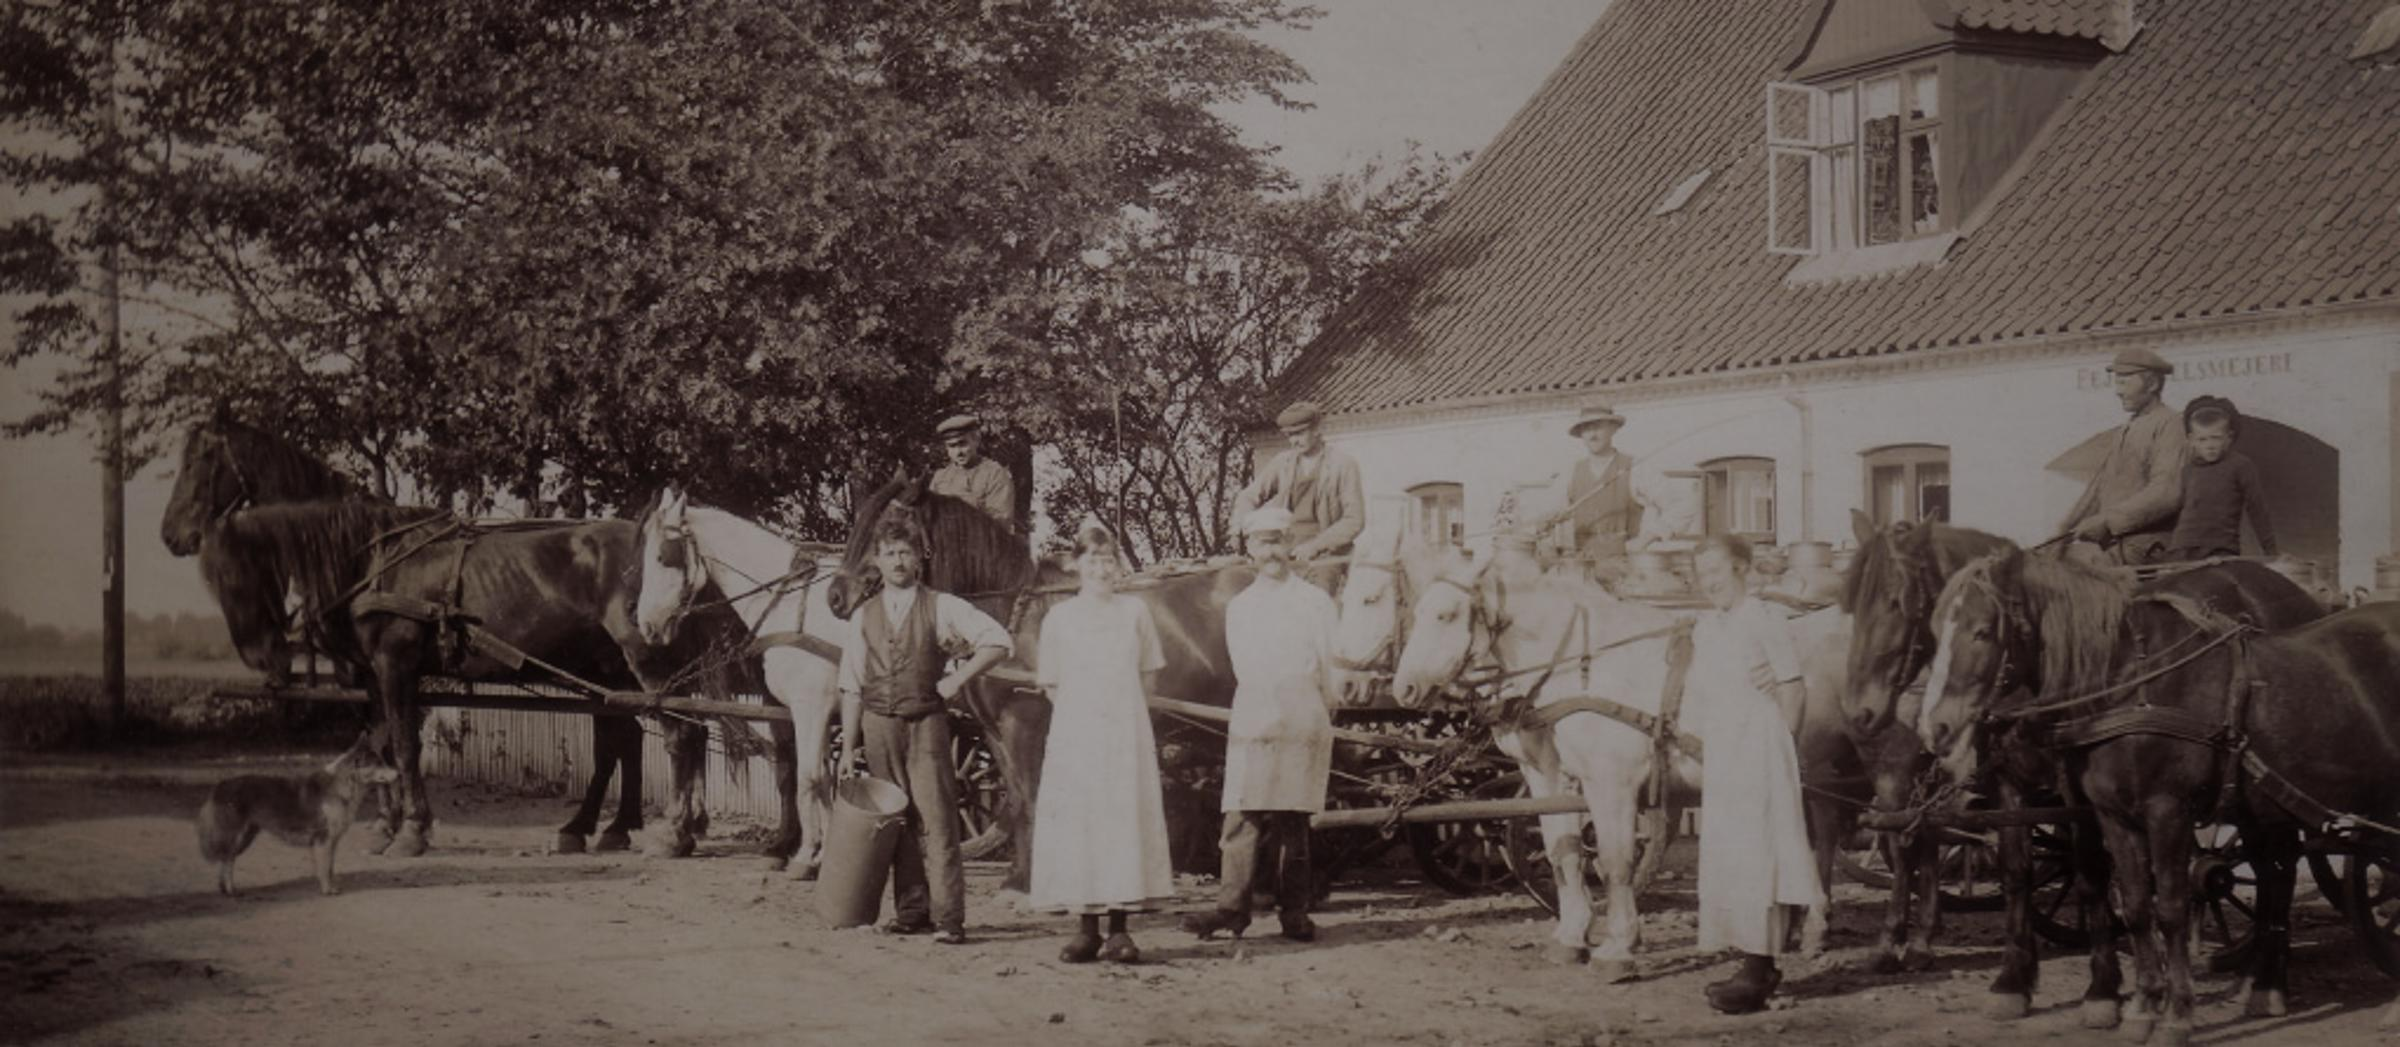 Old black and white image of farmers and horses with carriages